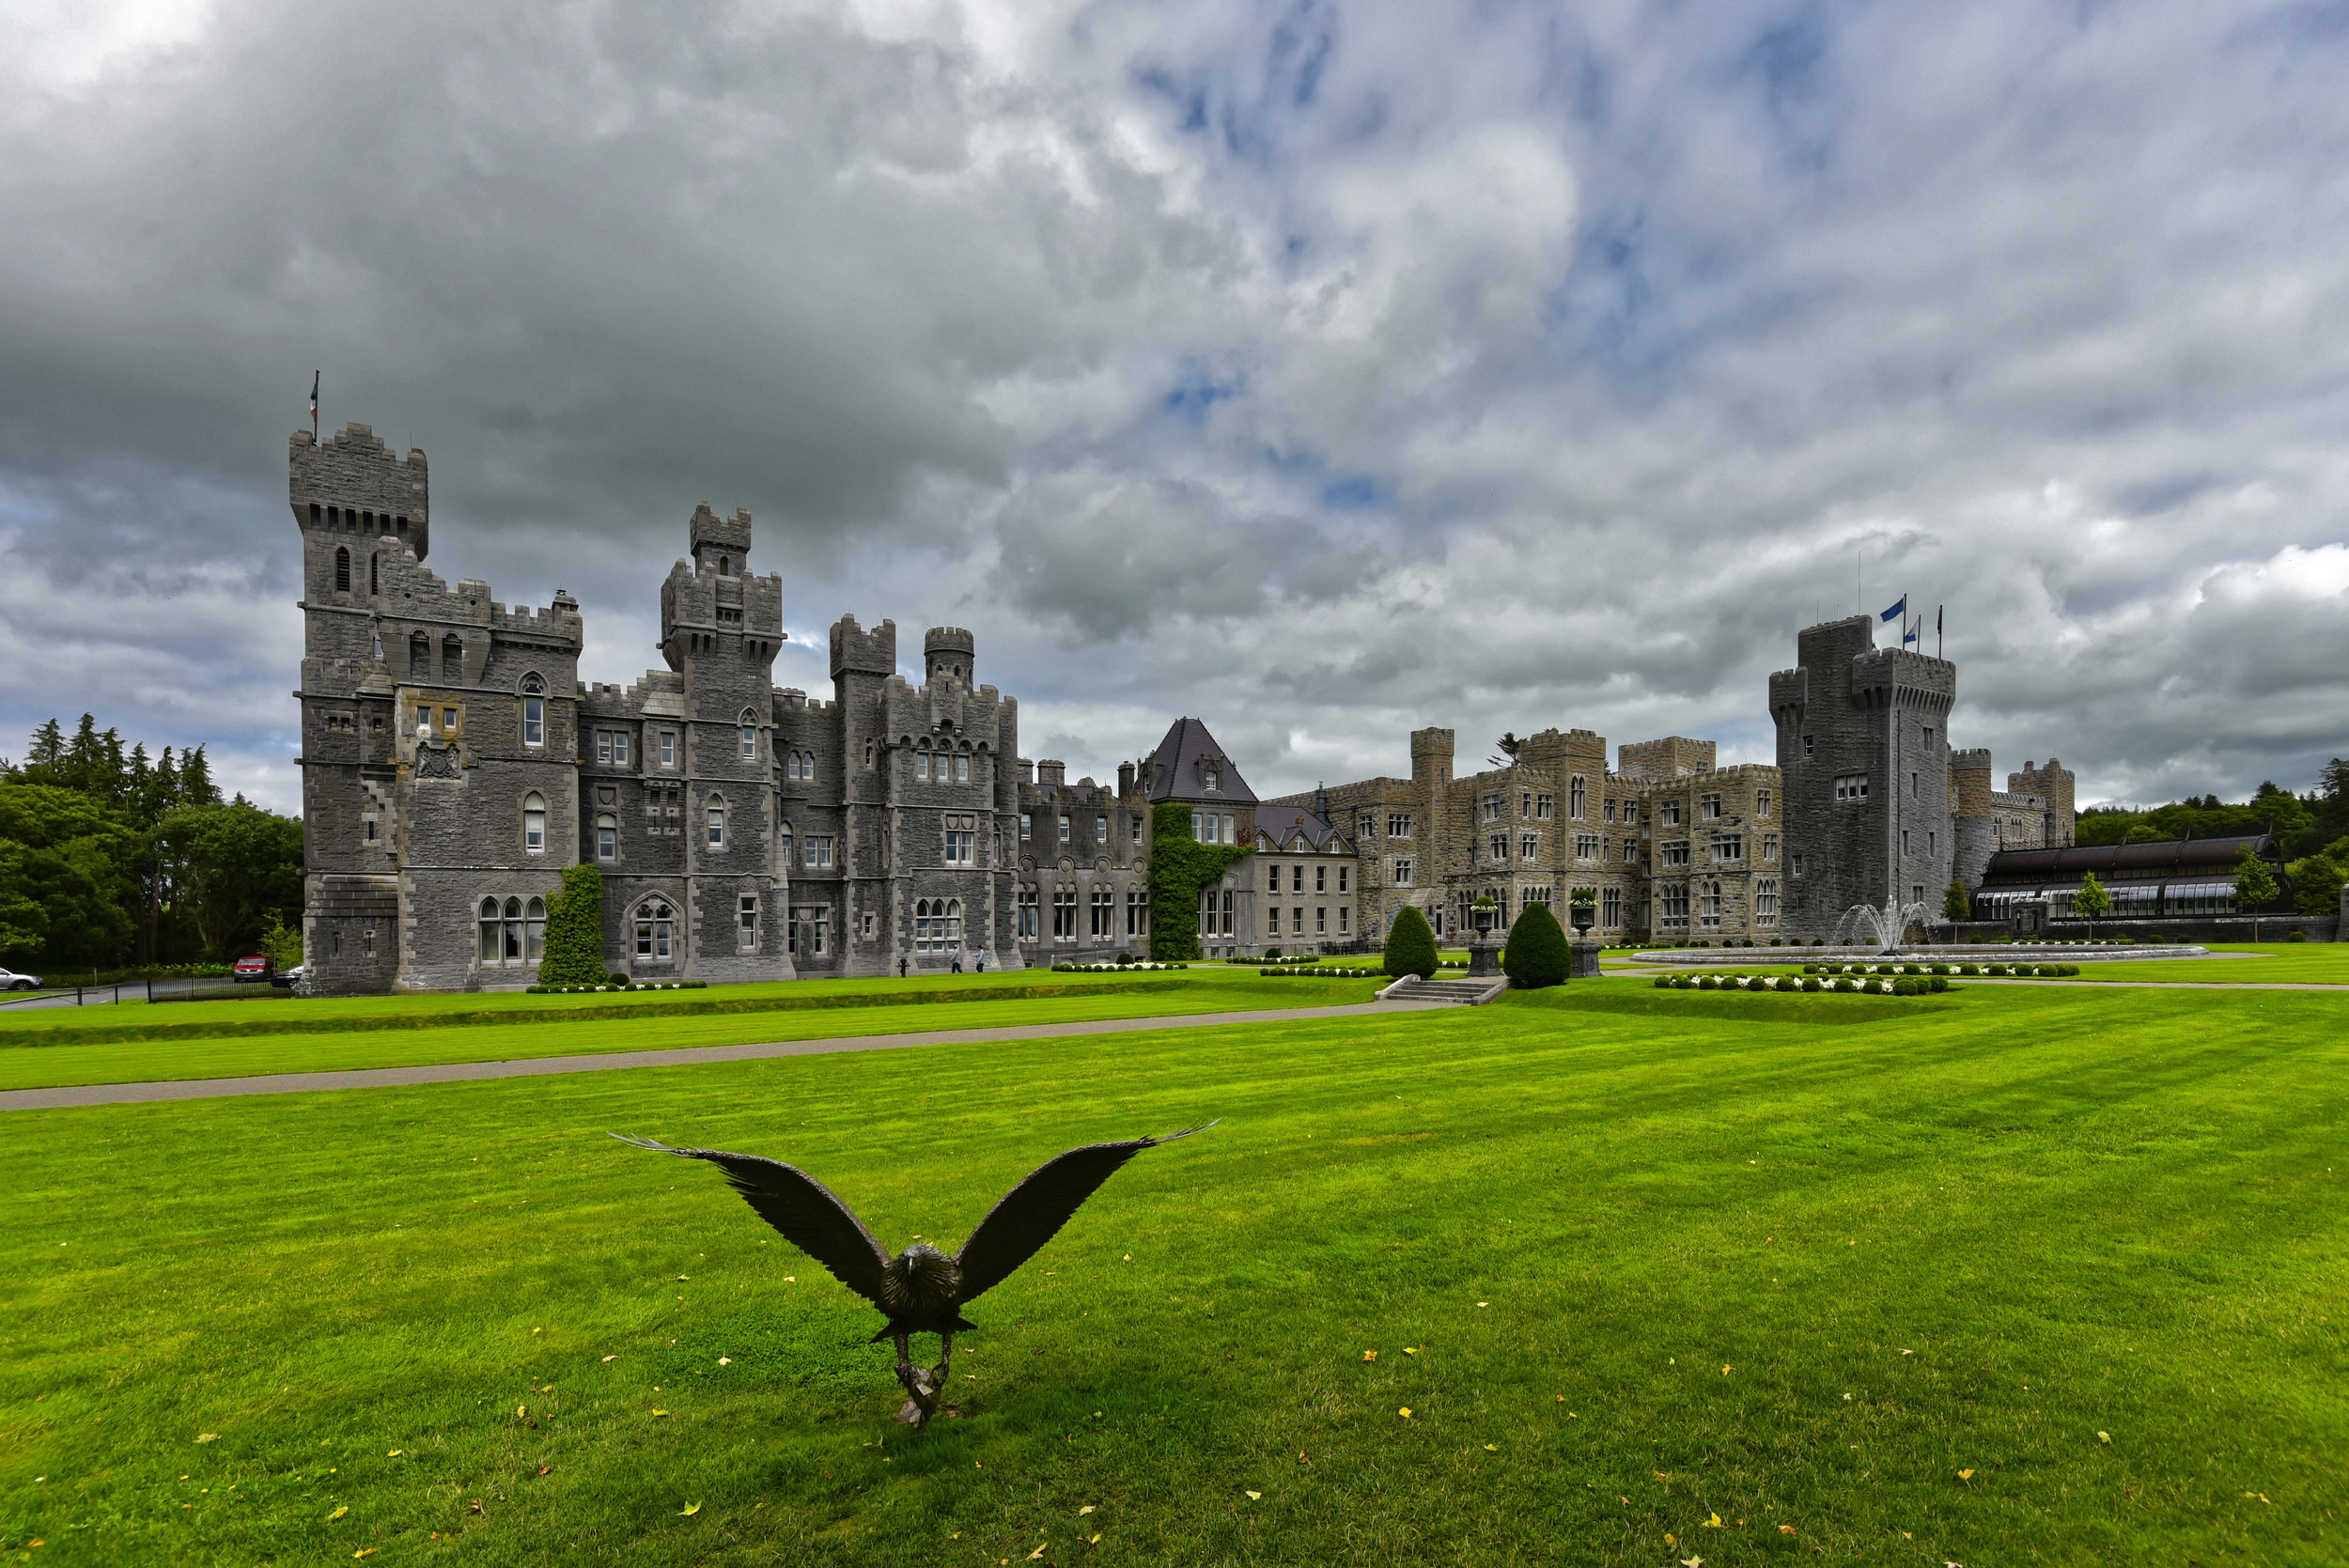 May 30:Ashford Castle12p - Hawk Walk2pm- Lunch reservations(inside Ashford Castle) - You'll check out of your hotel this morning and travel to Ashford Castle!Massive, flamboyantly turreted, Ashford is the very picture of a romantic Irish castle. This famed mock-Gothic baronial showpiece, dating from the 13th century, and rebuilt in 1870 for the Guinness family, has been wowing visitors like President Reagan, John Travolta, Brad Pitt, and Pierce Brosnan—who got married here—ever since.Nearly bigger than the entire neighboring village of Cong, it is strong on luxury and service, yet maintains a relaxed atmosphere in which guests of all ages feel totally at ease. Kids immediately associate the castle with Hogwarts... and better yet, you don't have to stay here to see the grounds!While a small fee will allow you entrance to the grounds and gardens, lunch reservations will allow you a sneak peak inside the castle (closed to guests not staying the night).After your meal, head outside to have a truly unique experience...Ireland's School of Falconry is the oldest established falconry school in Ireland. During your one hour private Hawk Walk,YOU fly their Harris hawks.Your instructor will introduce you to your hawk and, within minutes, you will be setting off around the magnificent woodlands to fly your hawk free. As you fly the hawks, your instructor will explain about the hawks' exceptional eyesight, their speed and agility and how the hawks were trained. The hawks will follow you from tree to tree through the woods before swooping down to land on your gloved fist. This is truly a one of a kind, lifelong memory.Once you have finished exploring Ashford Castle, continue on your day by driving north to Northern Ireland.You'll be leaving the country of Ireland and entering Northern Ireland. The border is almost non-existent (you'll know you are in Northern Ireland when the yellow broken line on the left side of the road - changes to a solid white line. ... and when the speed l